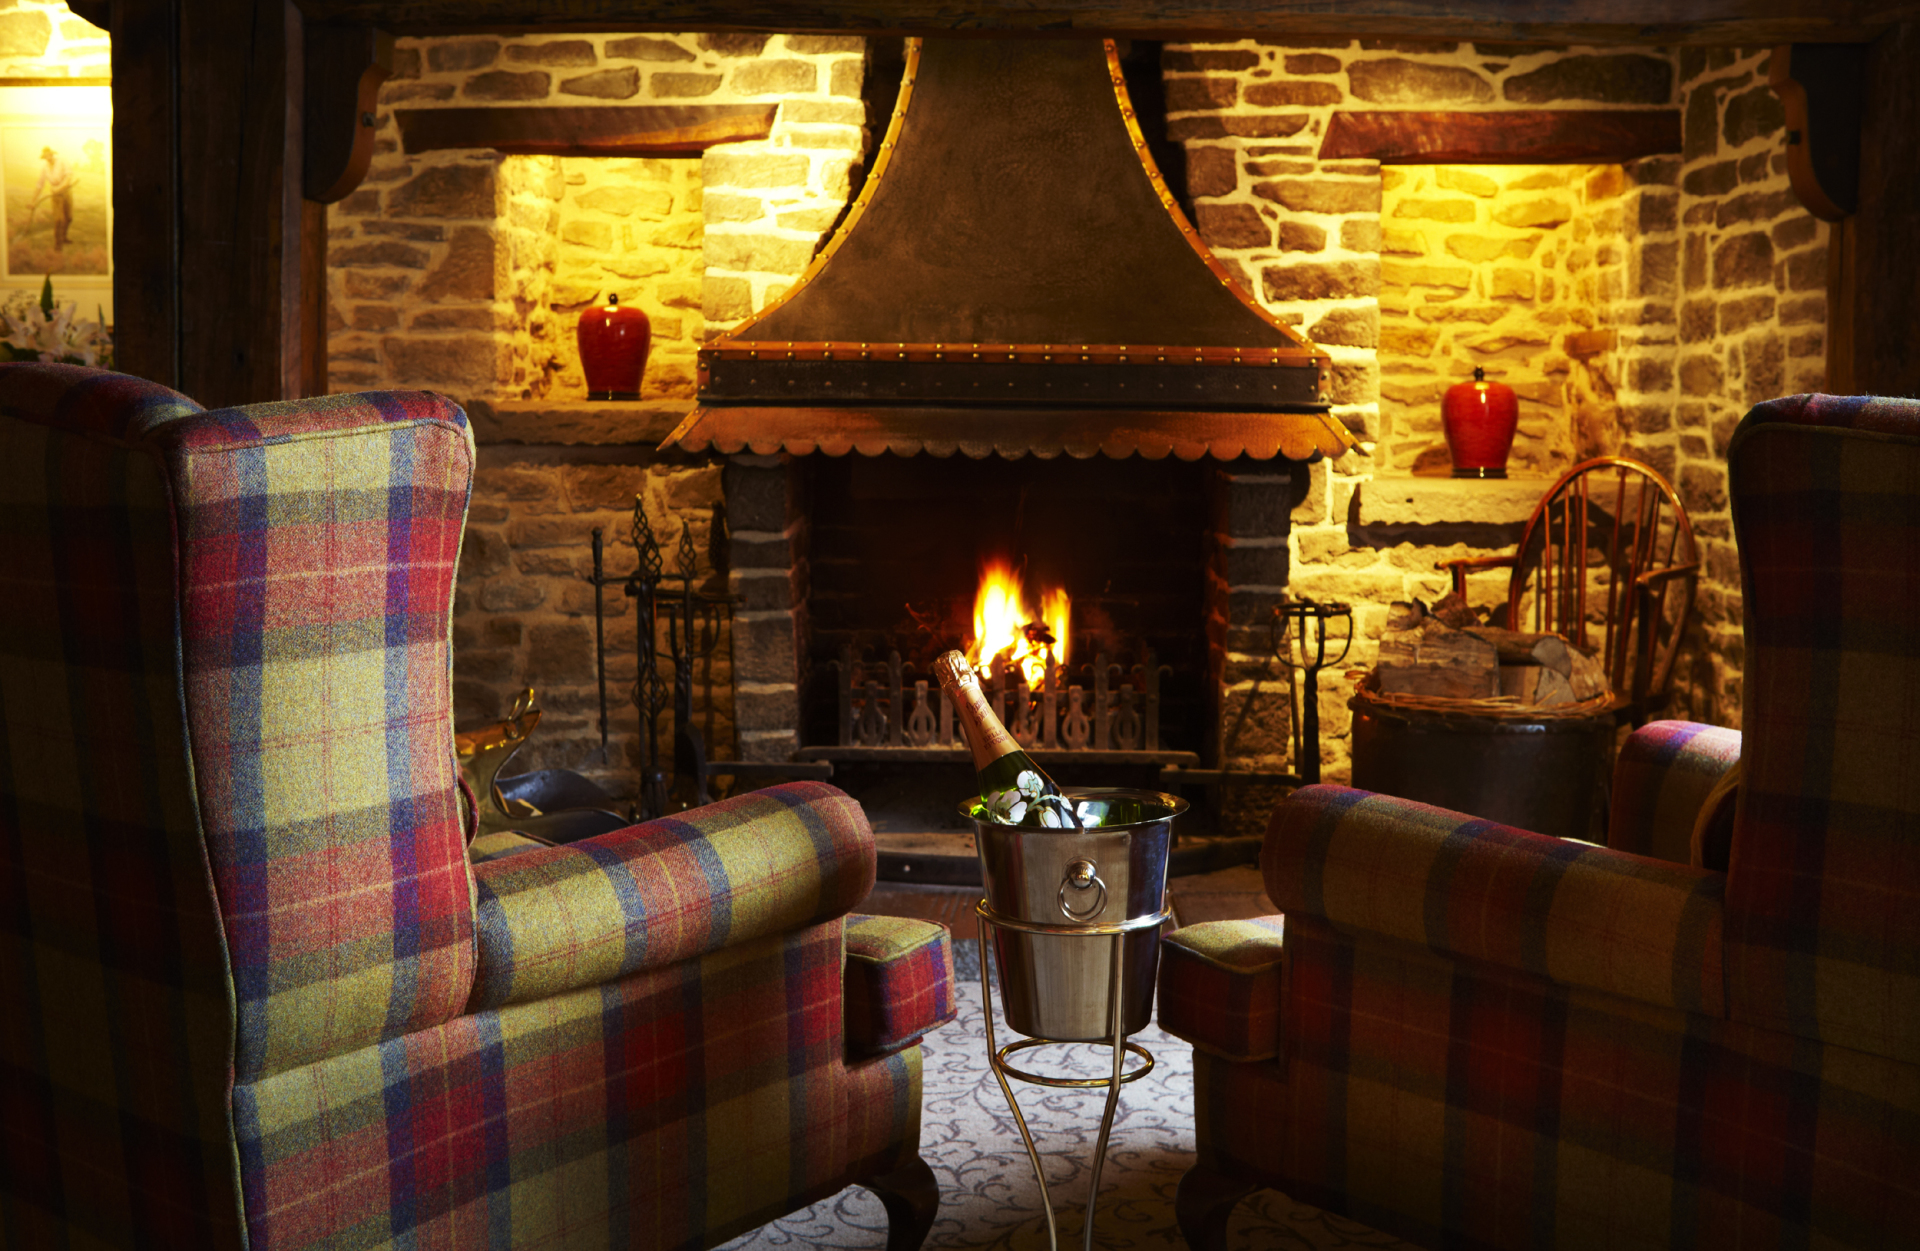 Places to stay UK - The Black Swan, Hemsley